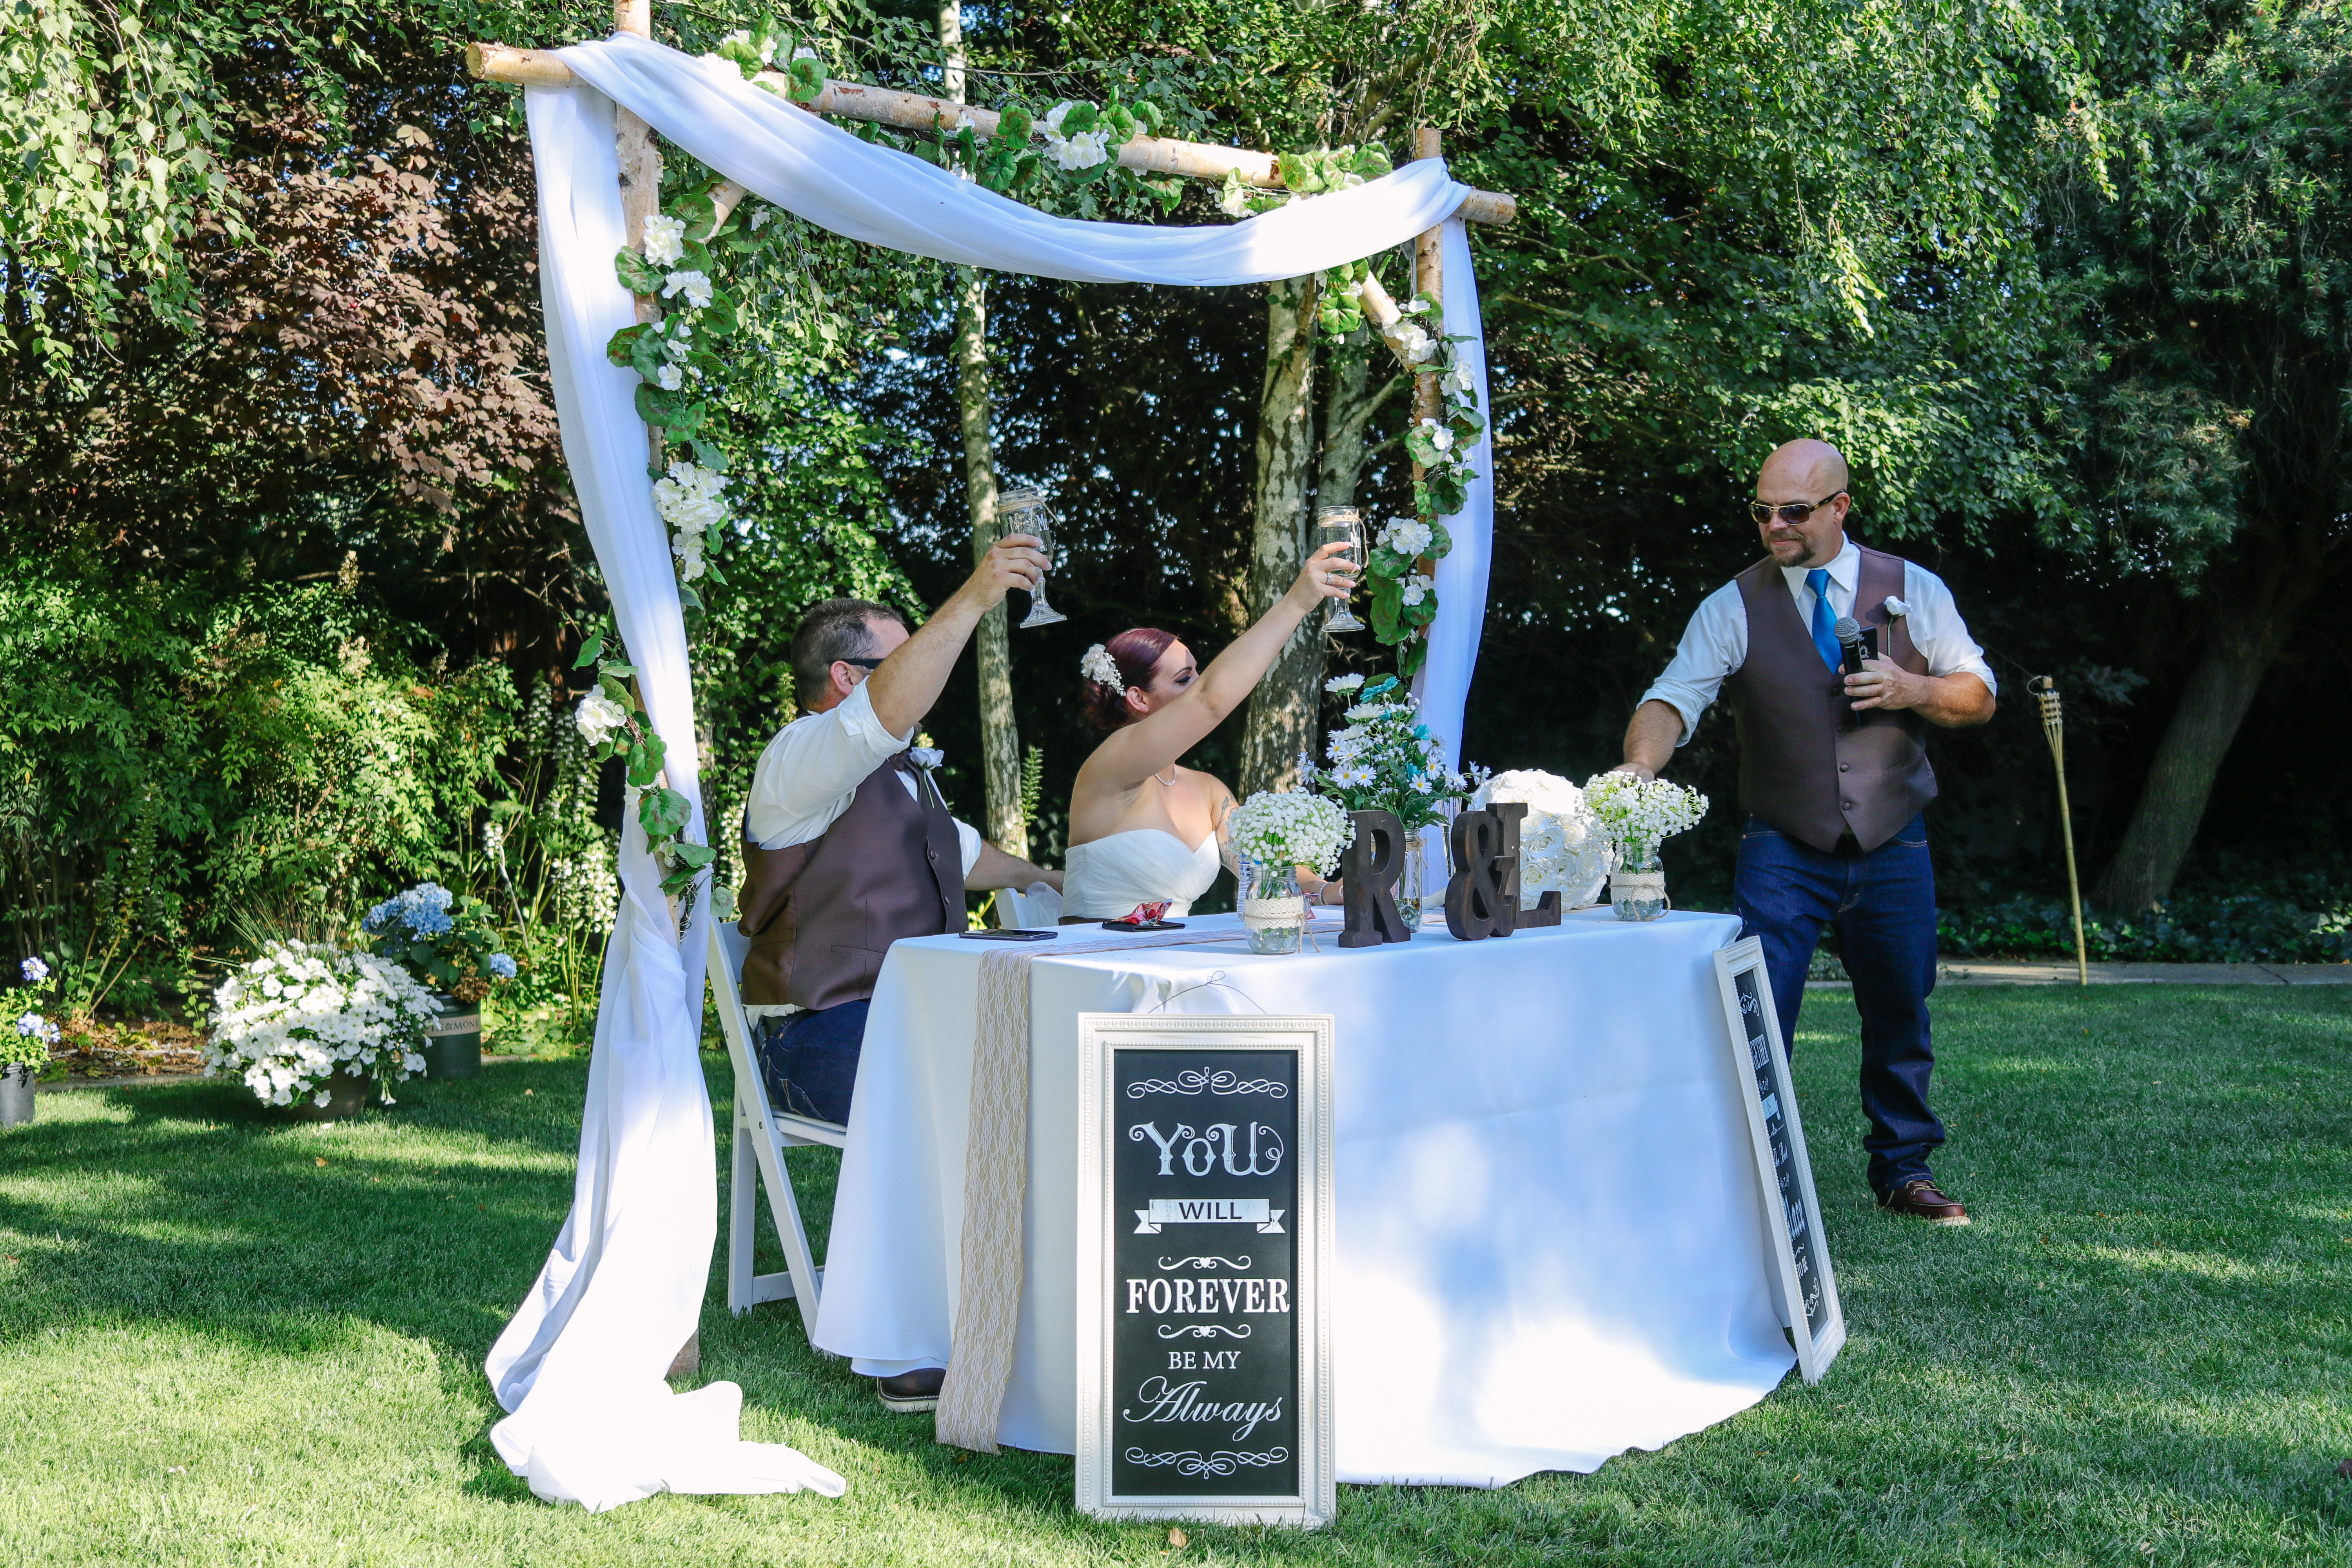 A Backyard Wedding + My Best Friend got Married